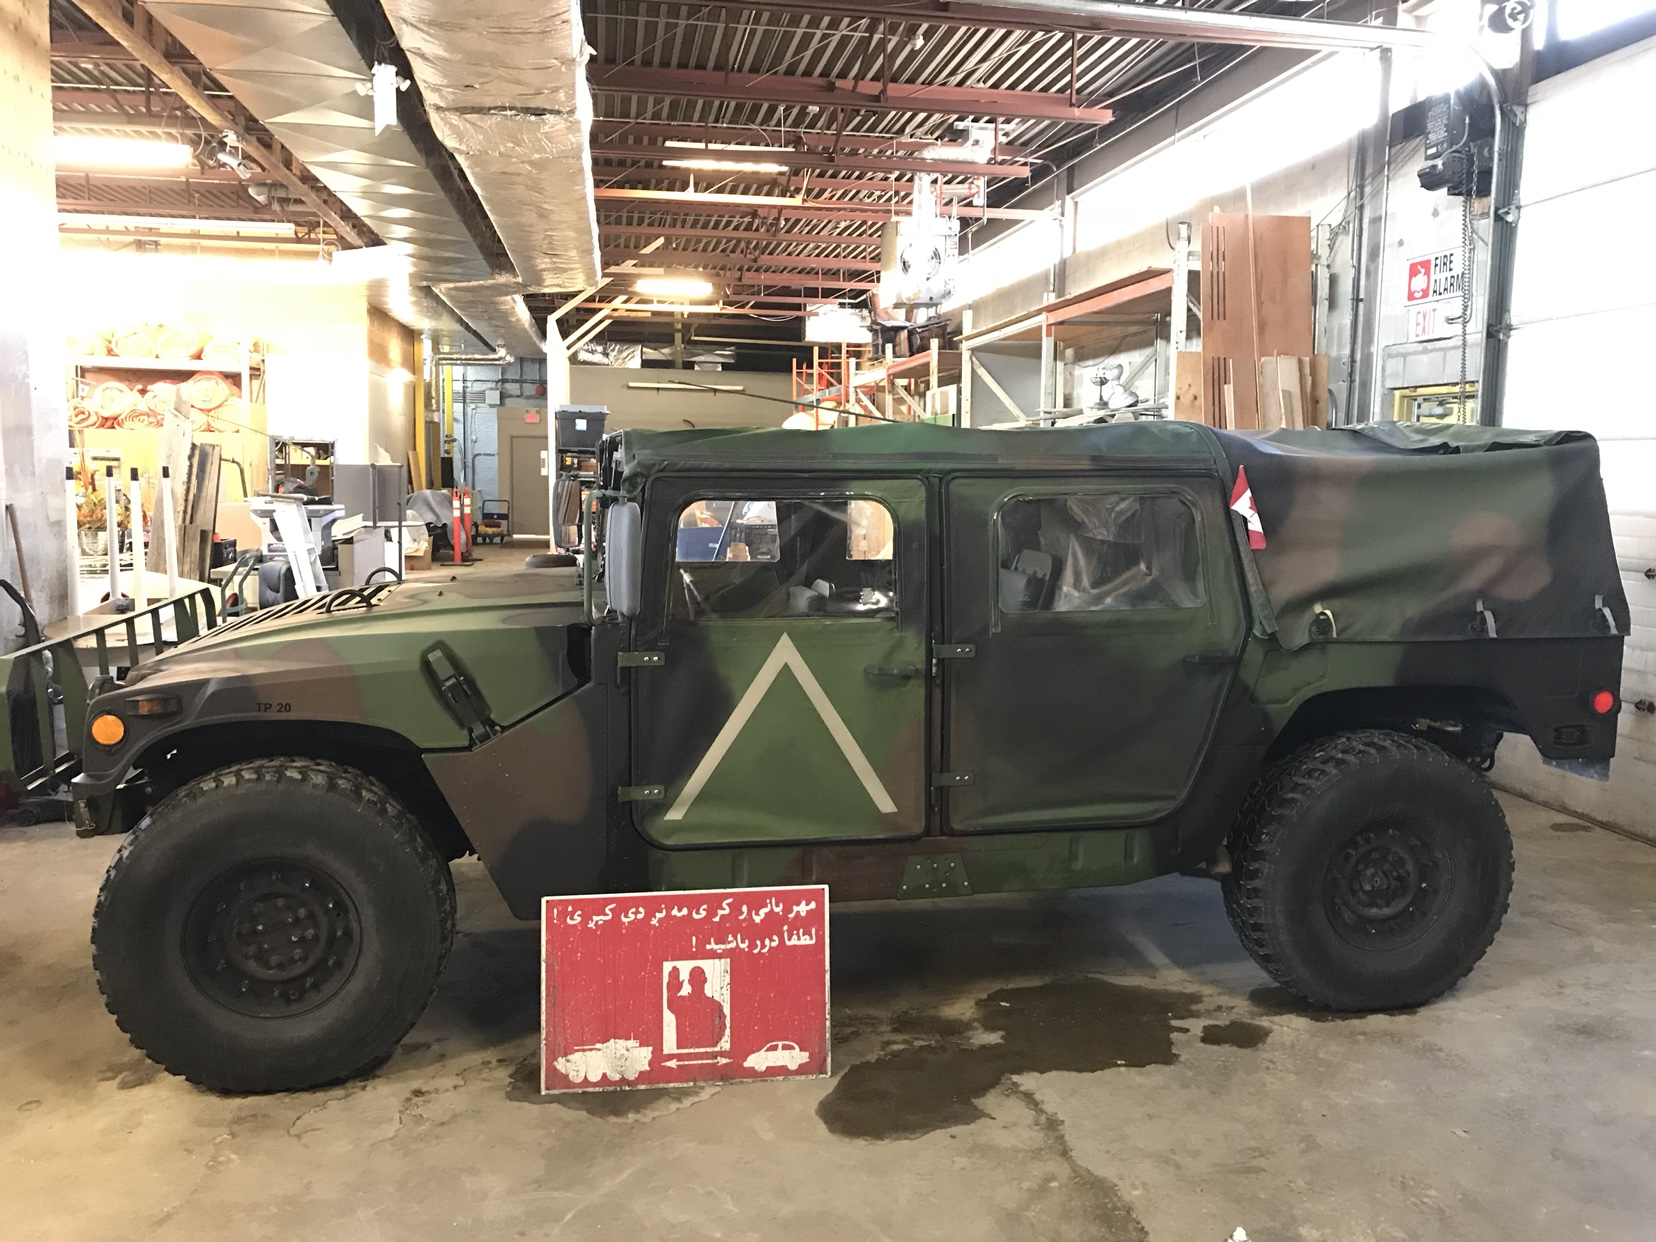 What have you done to your HMMWV today/lately [Archive] - Page 10 - Steel  Soldiers::Military Vehicles Supersite